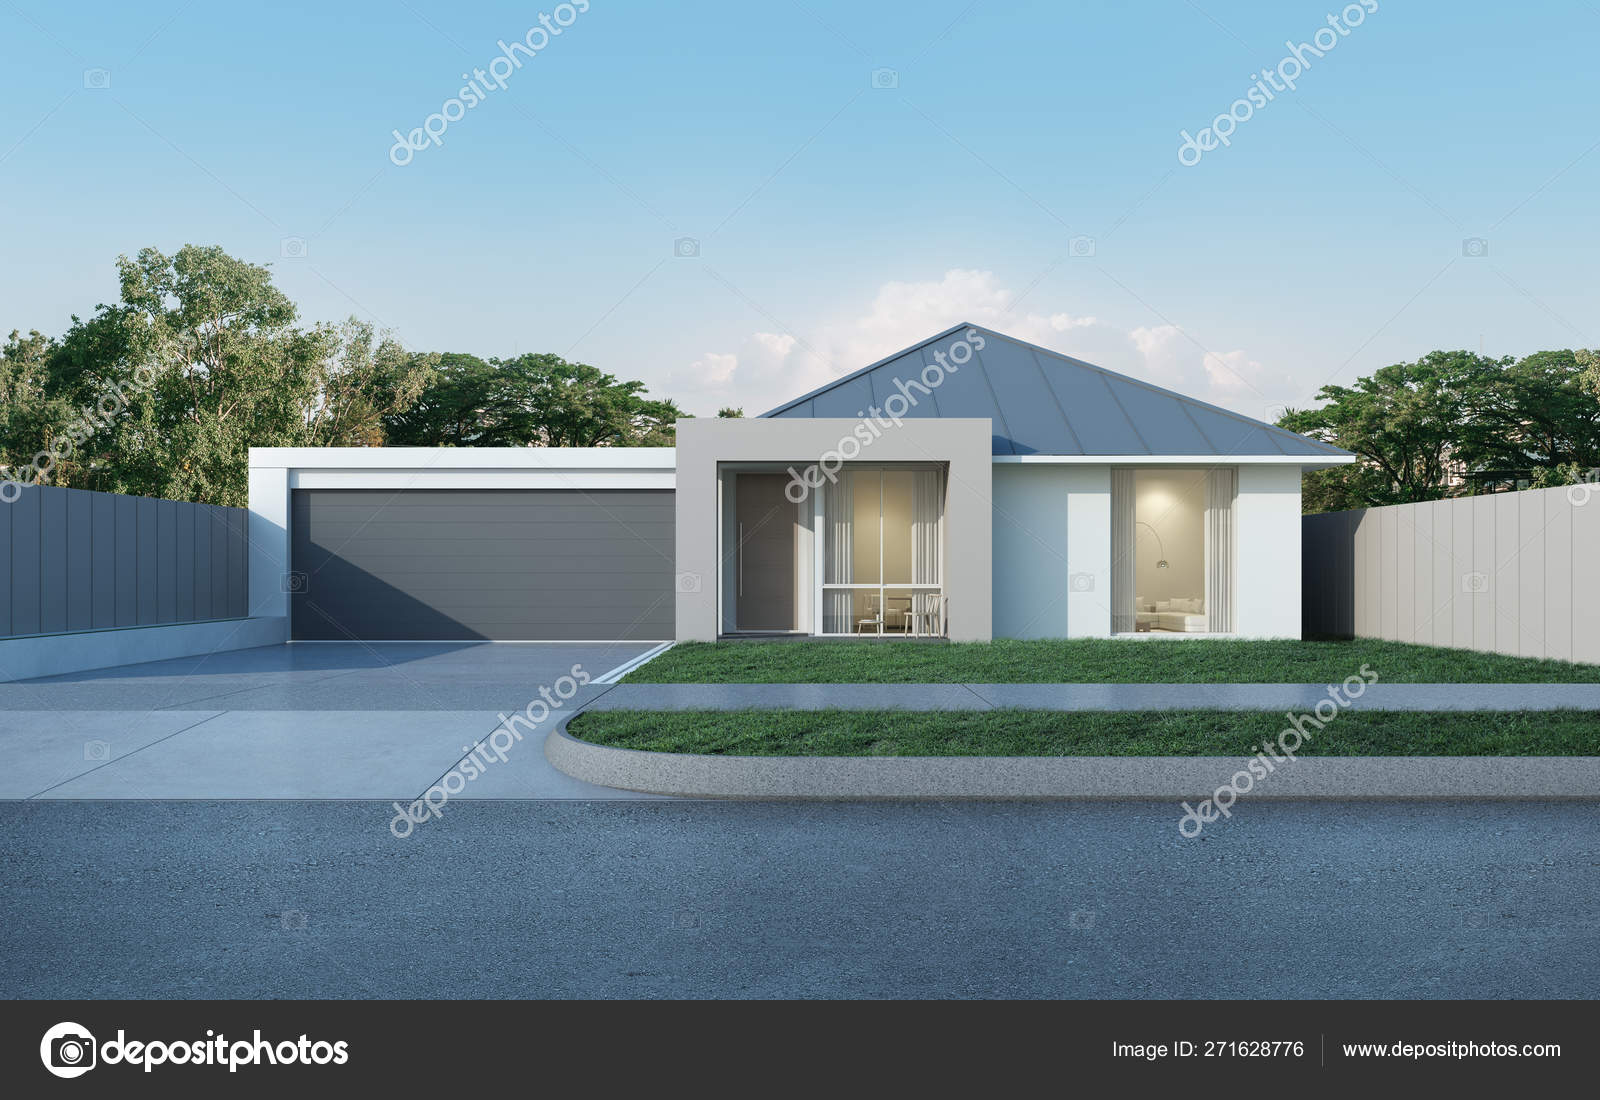 View Modern House Australian Style Blue Sky Background Contemporary Residence Stock Photo C Nuchao 271628776